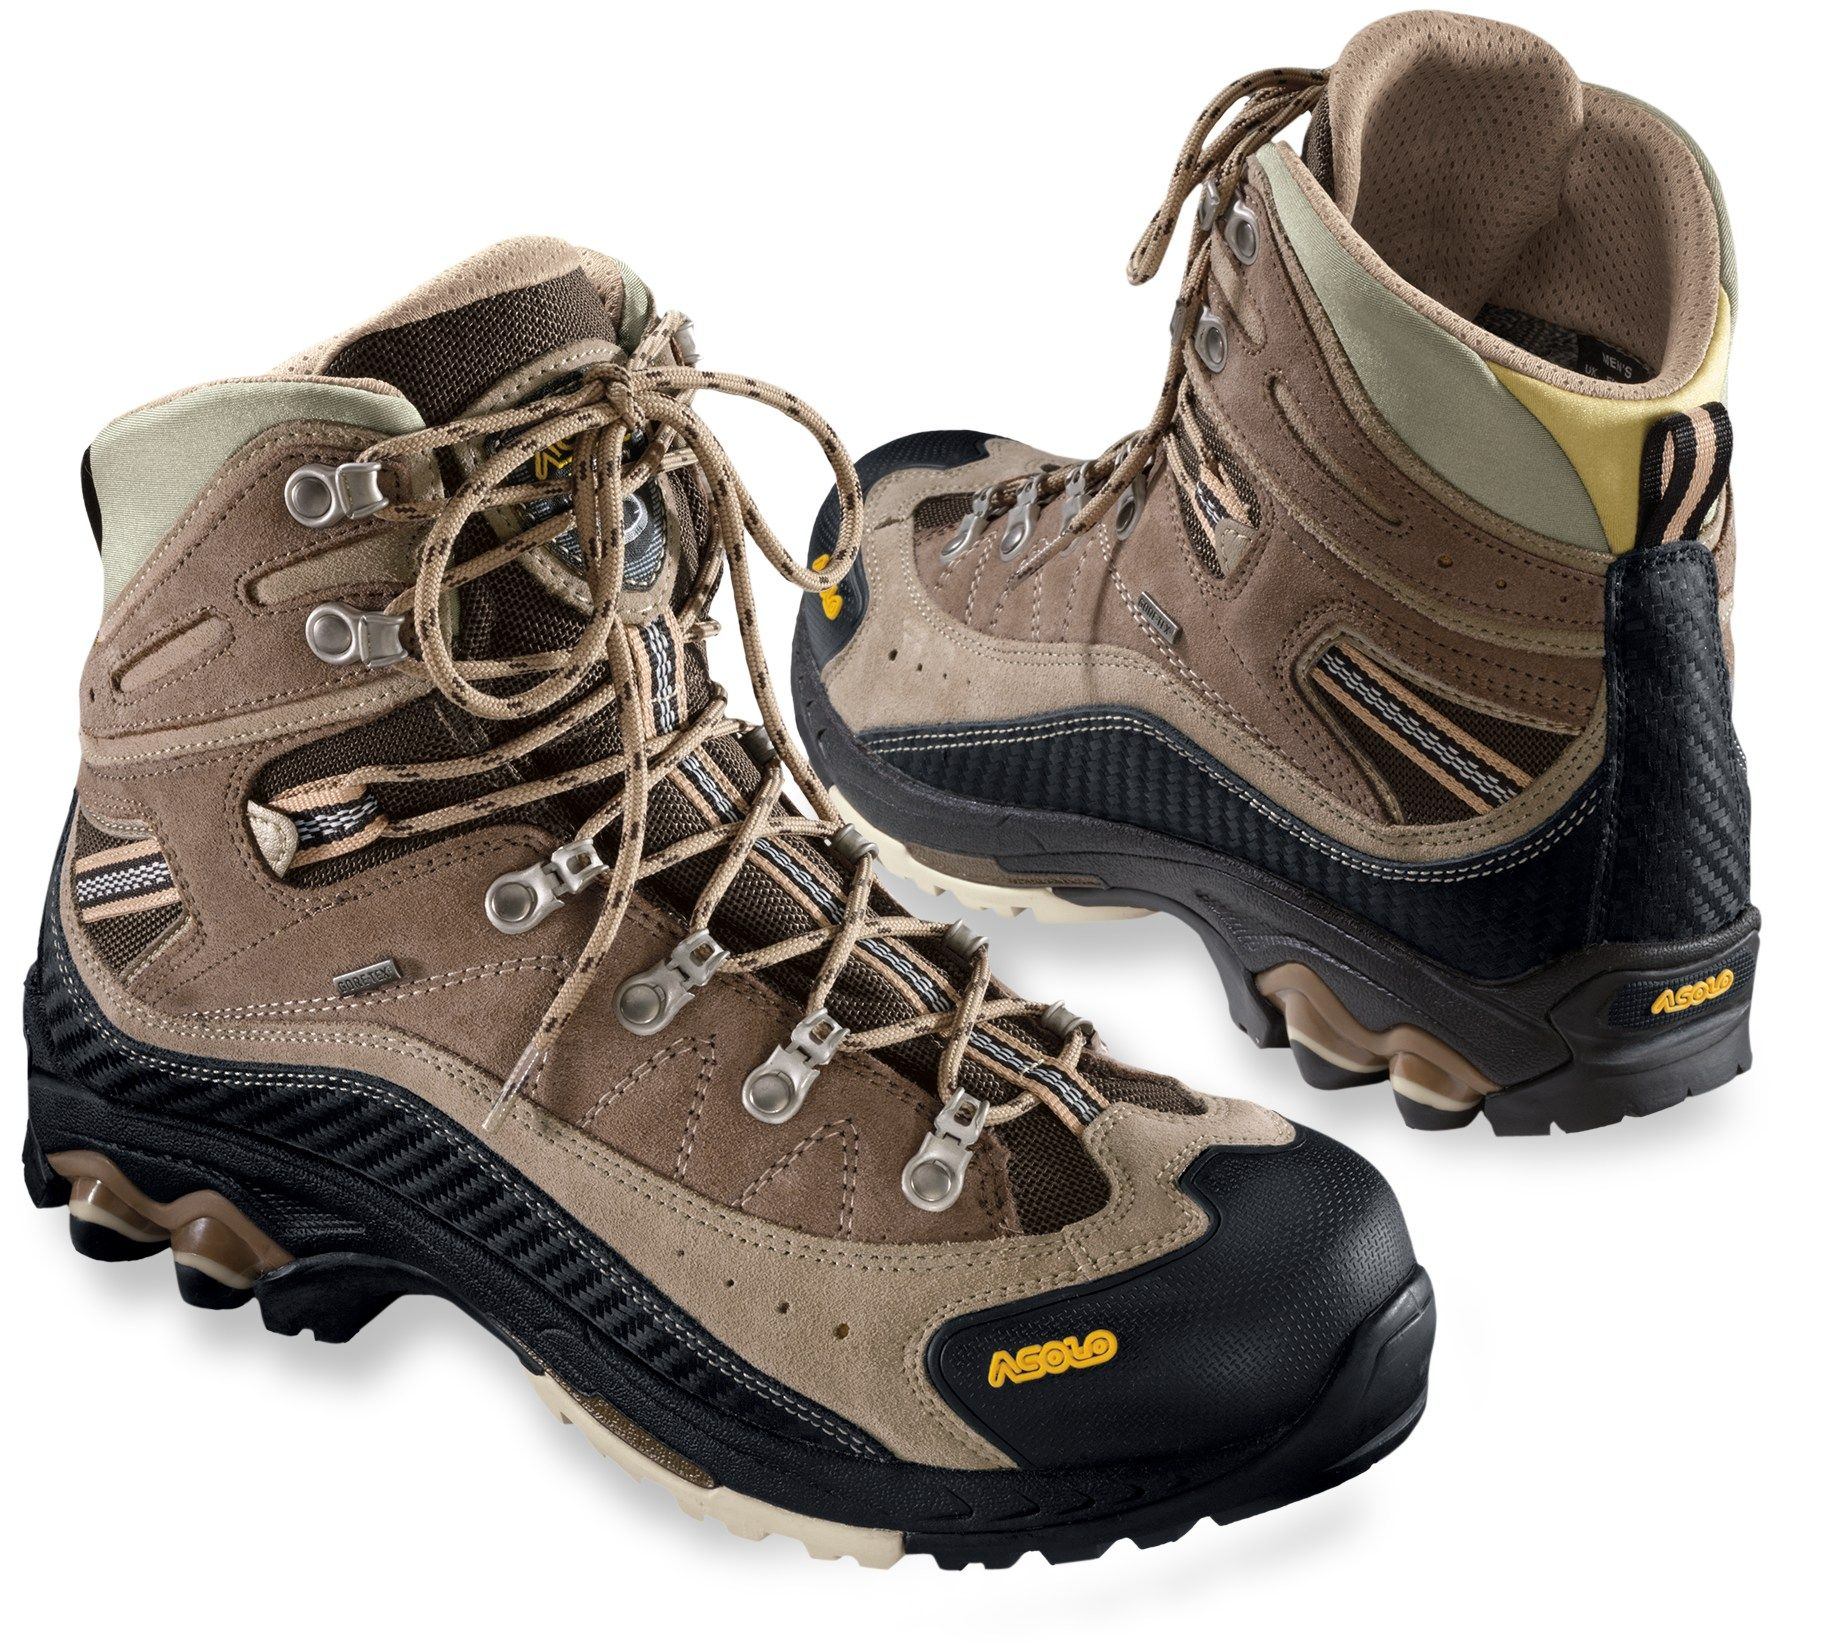 Asolo Men's Moran GTX Hiking Boots Dark Sand/Nicotine 14